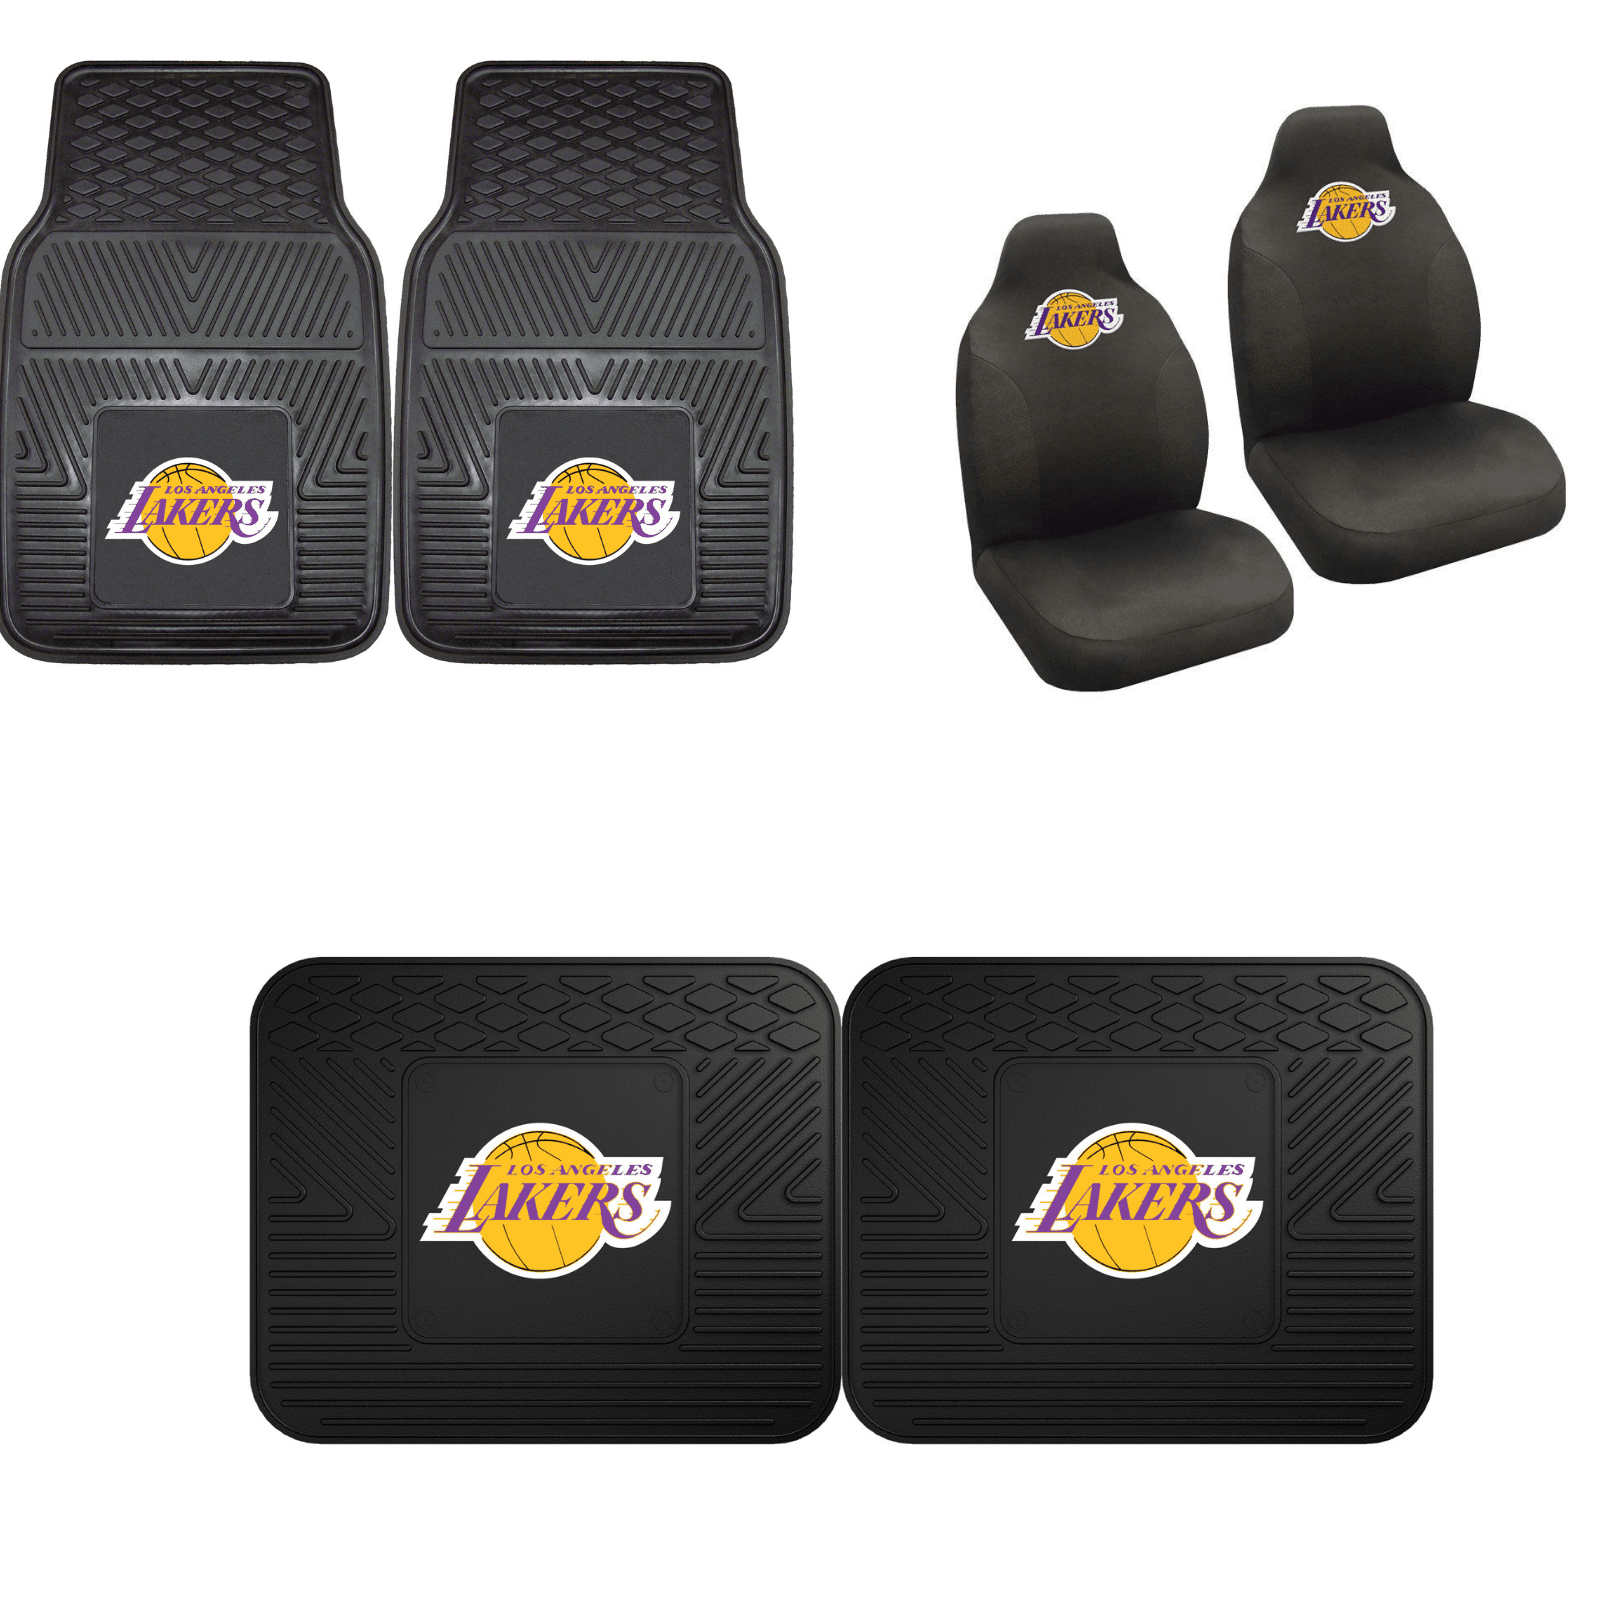 Los Angeles Lakers Car Accessories, Car Mats & Seat Covers